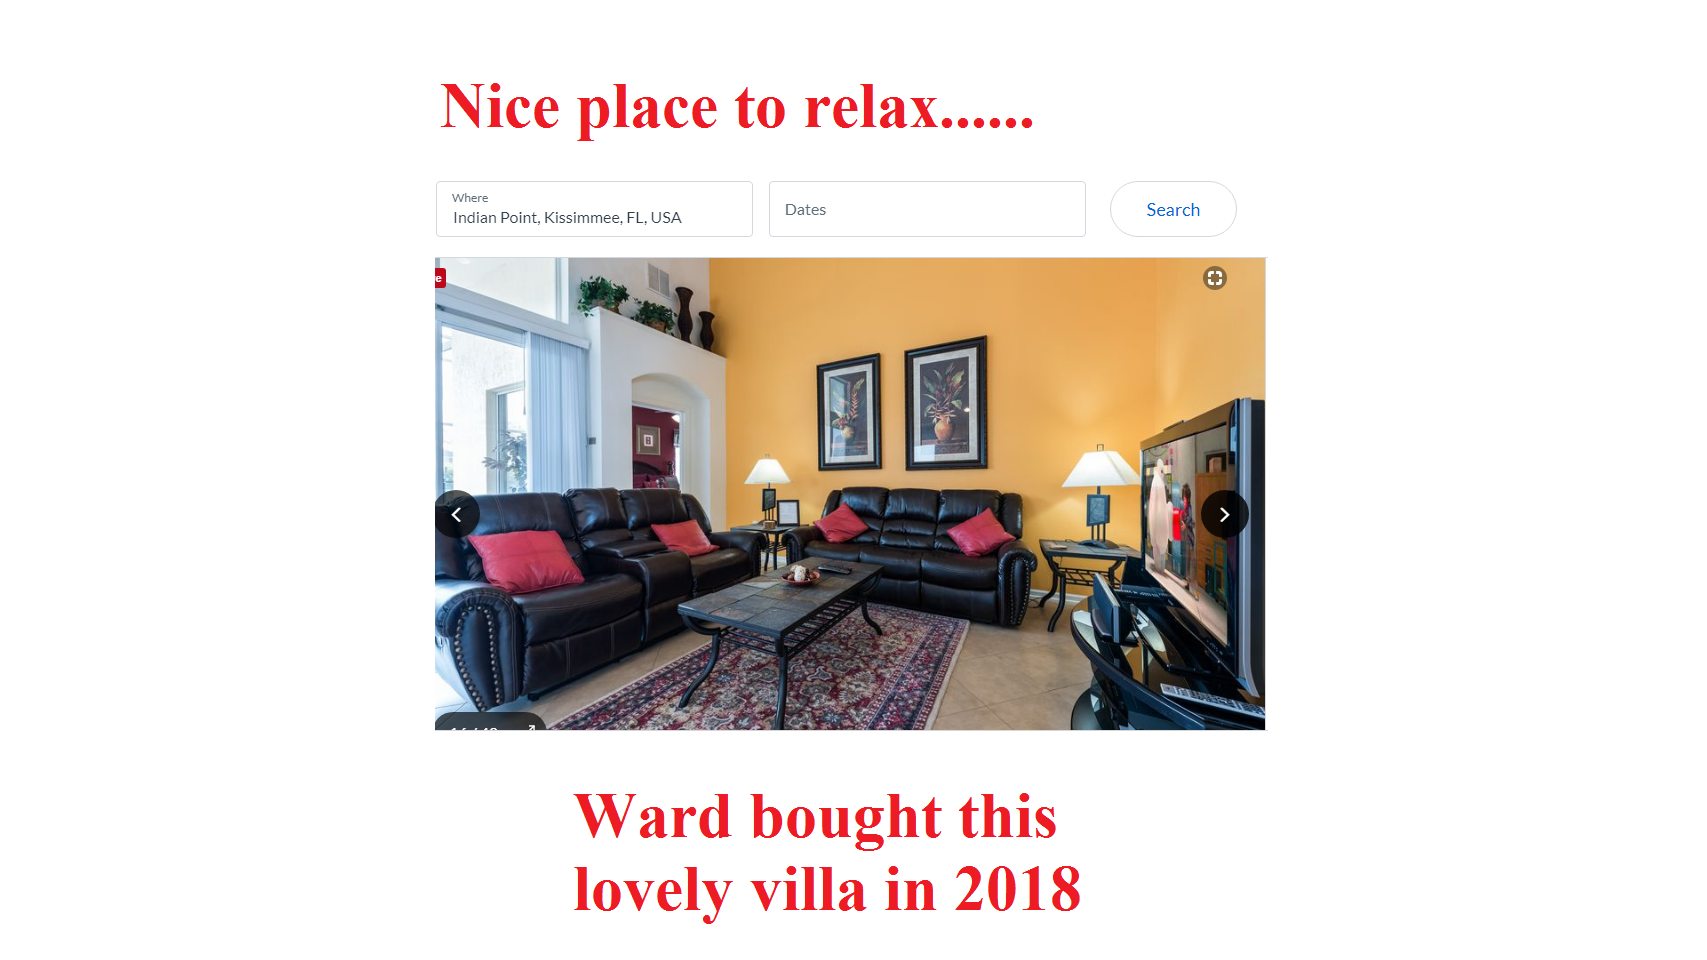 Pension Life Blog - Mastermind - Stephen Ward has a new villa (as well as the 10 others) which he bought in 2018